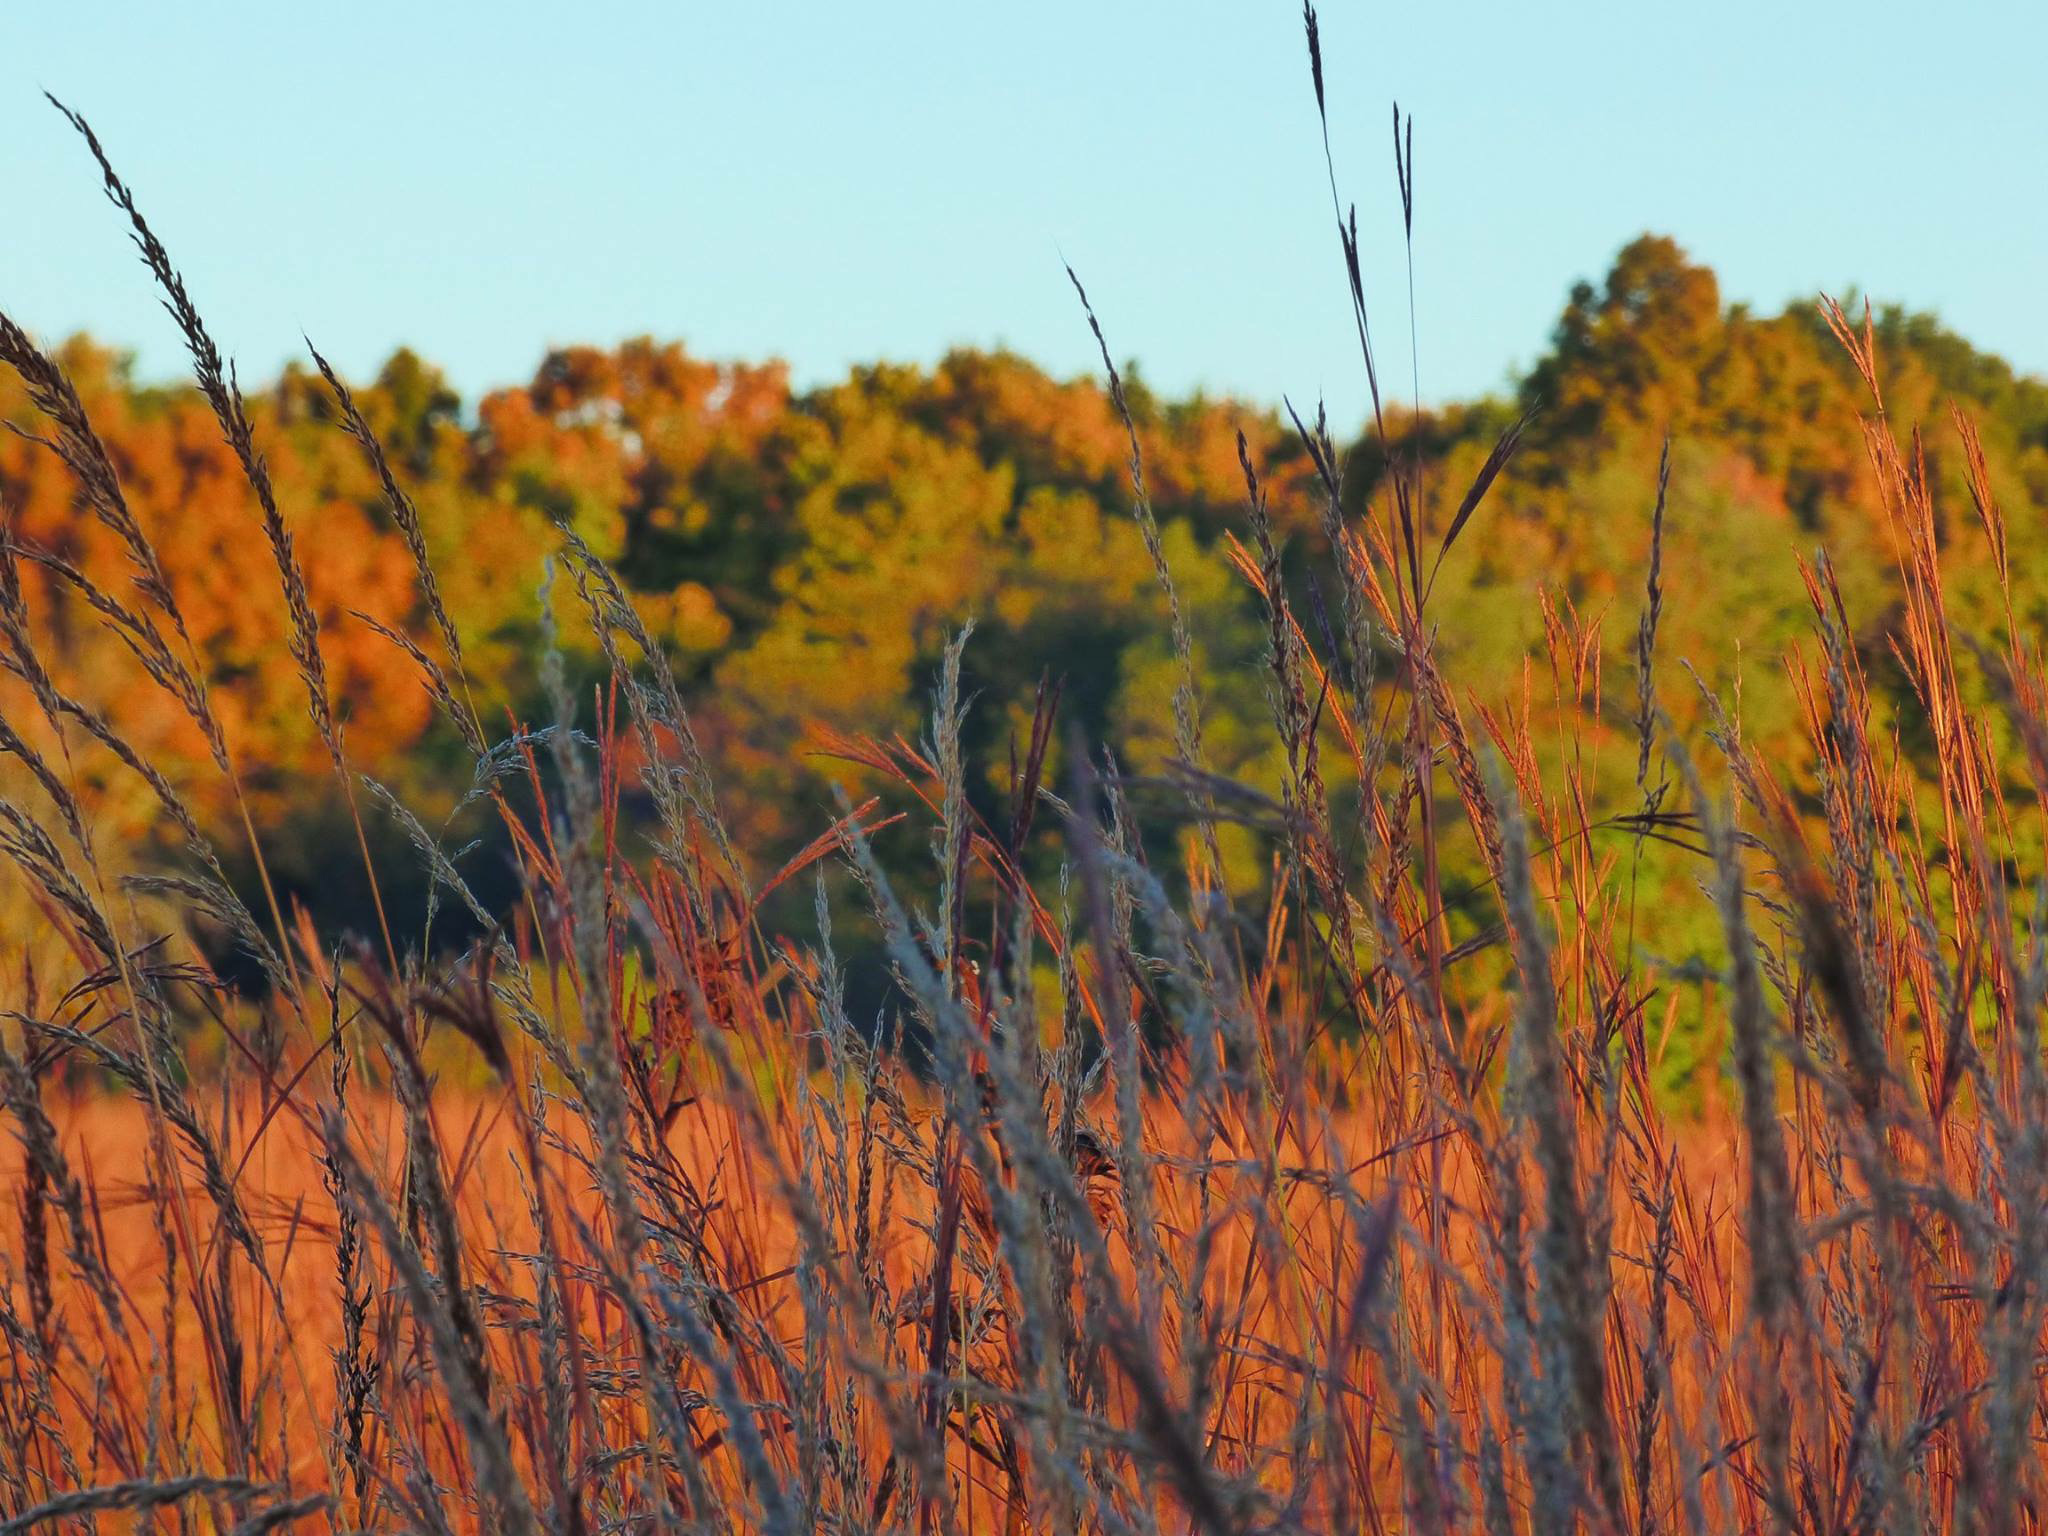 landscape, nature, tallgrass prairie, grass, plant, tree, big bluestem grass